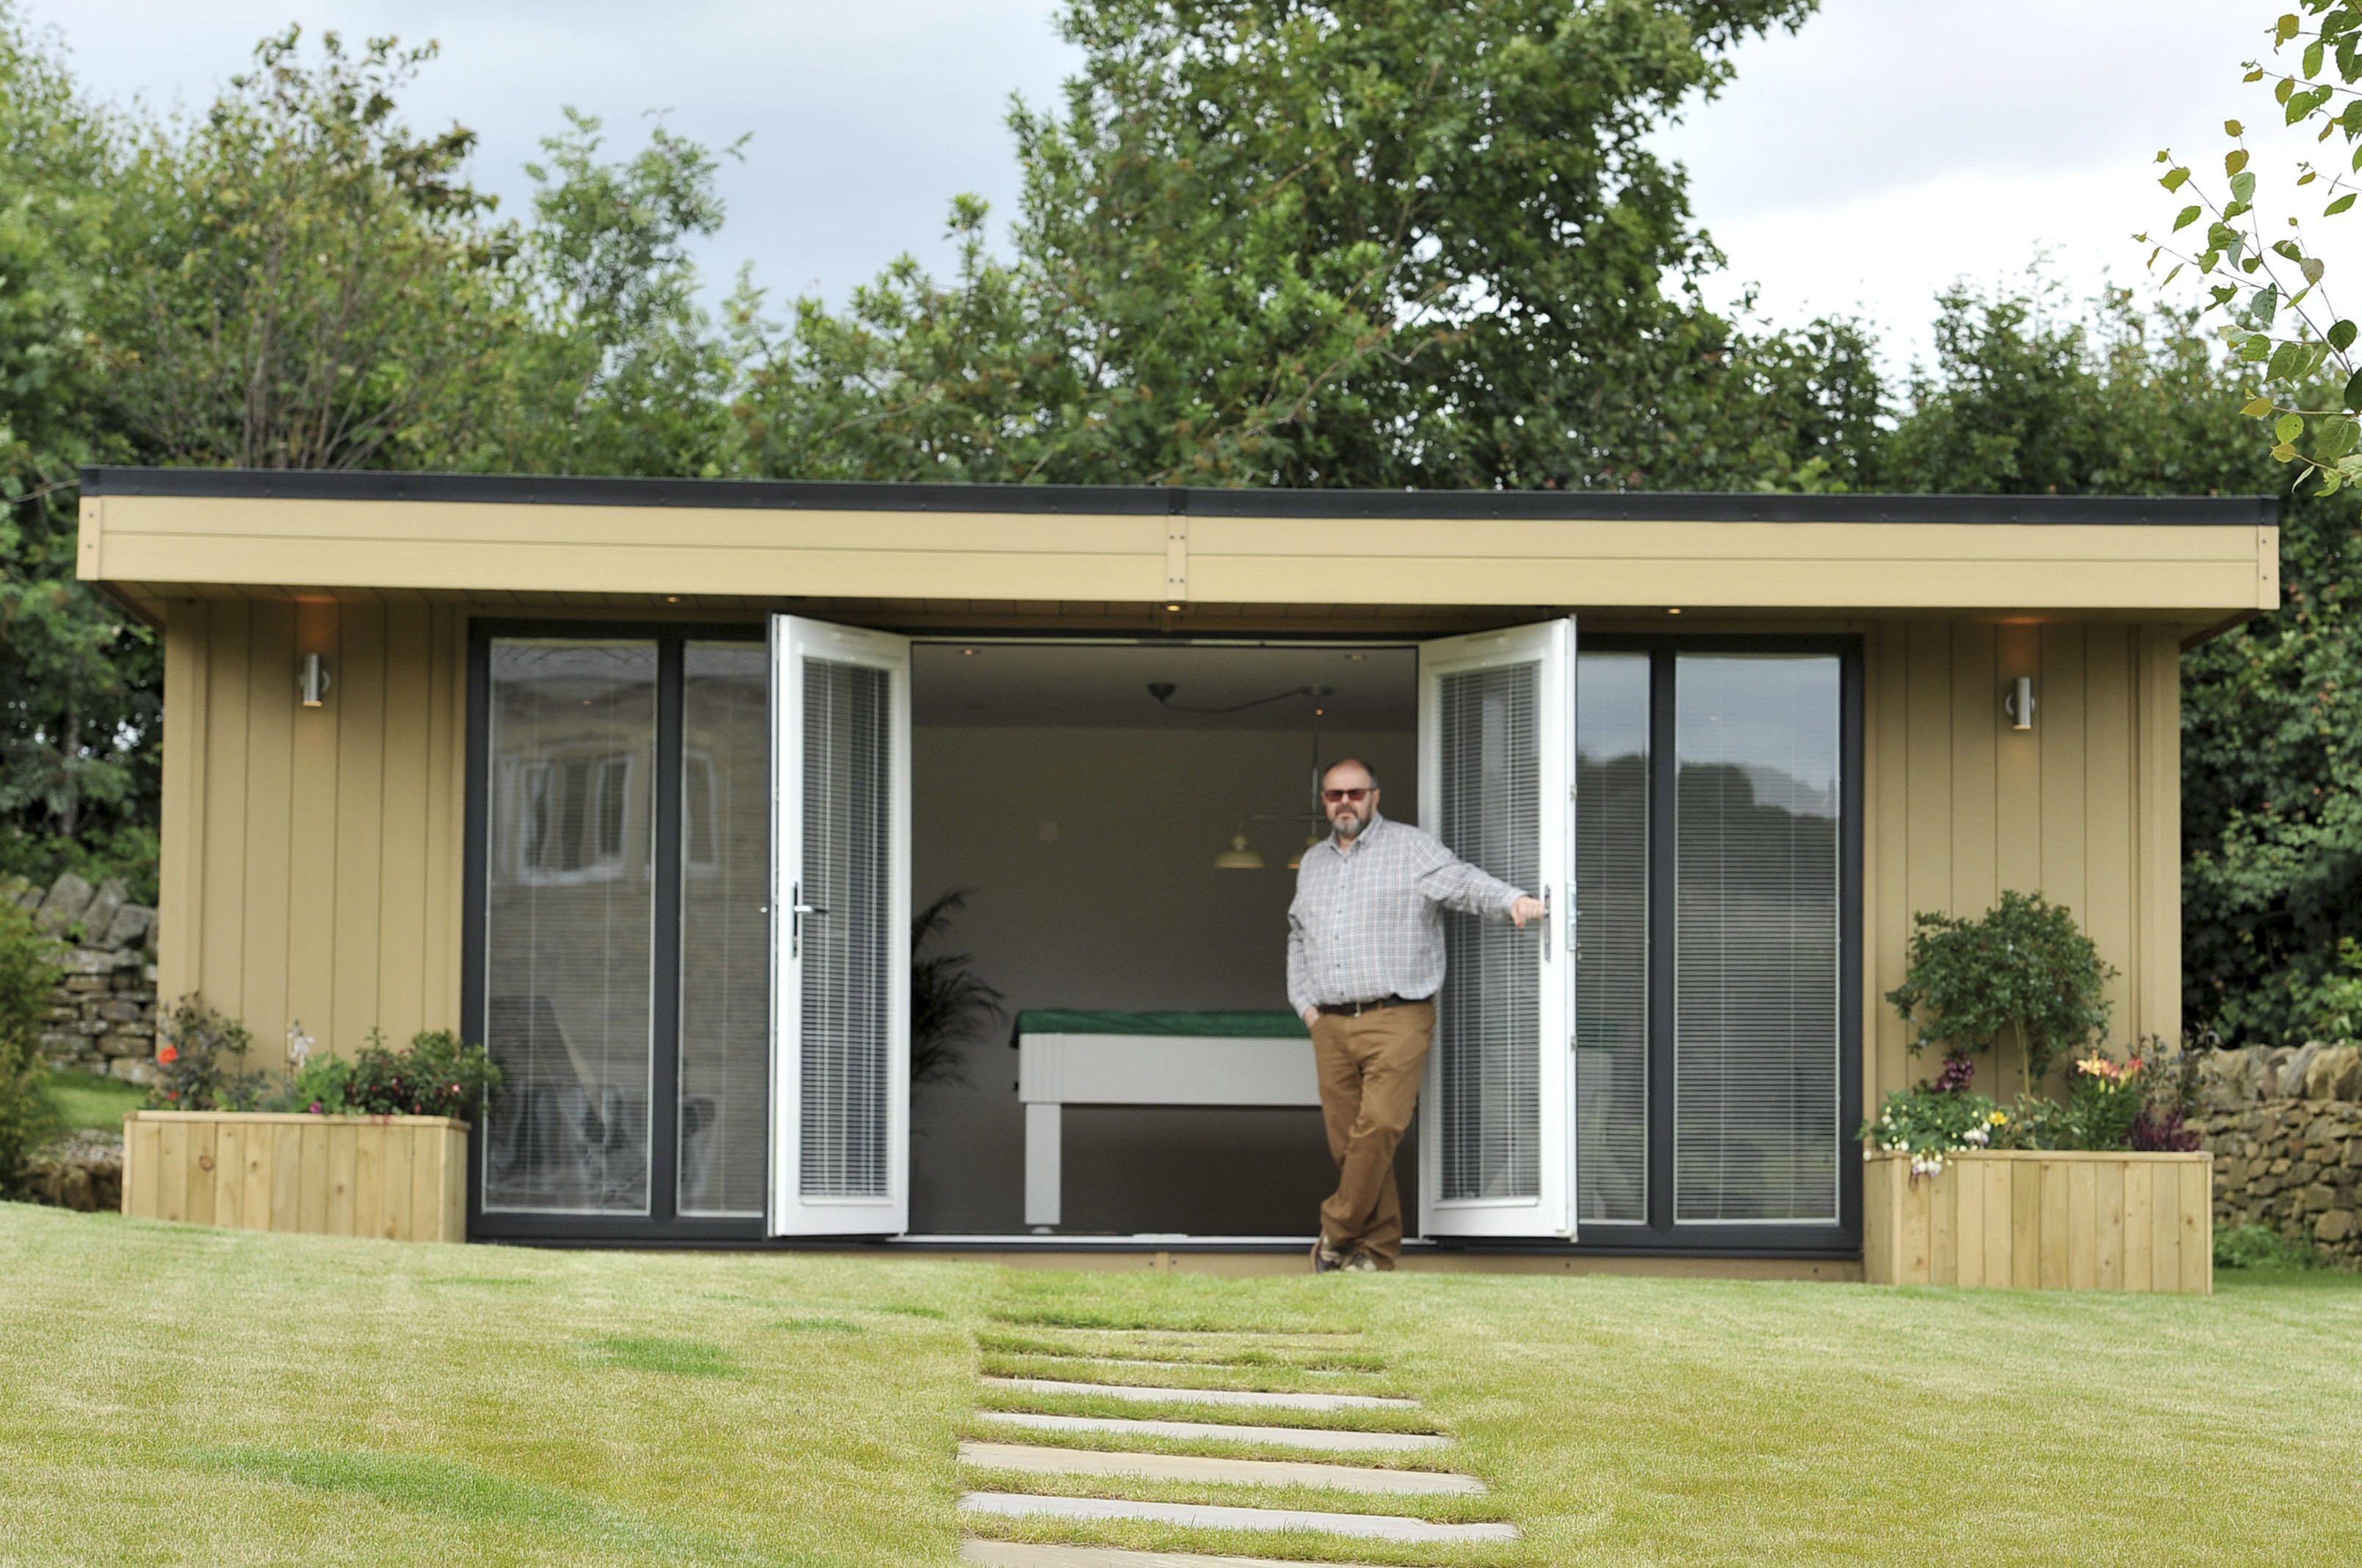 Planning and building regulations for garden rooms and offices for Timber garden rooms